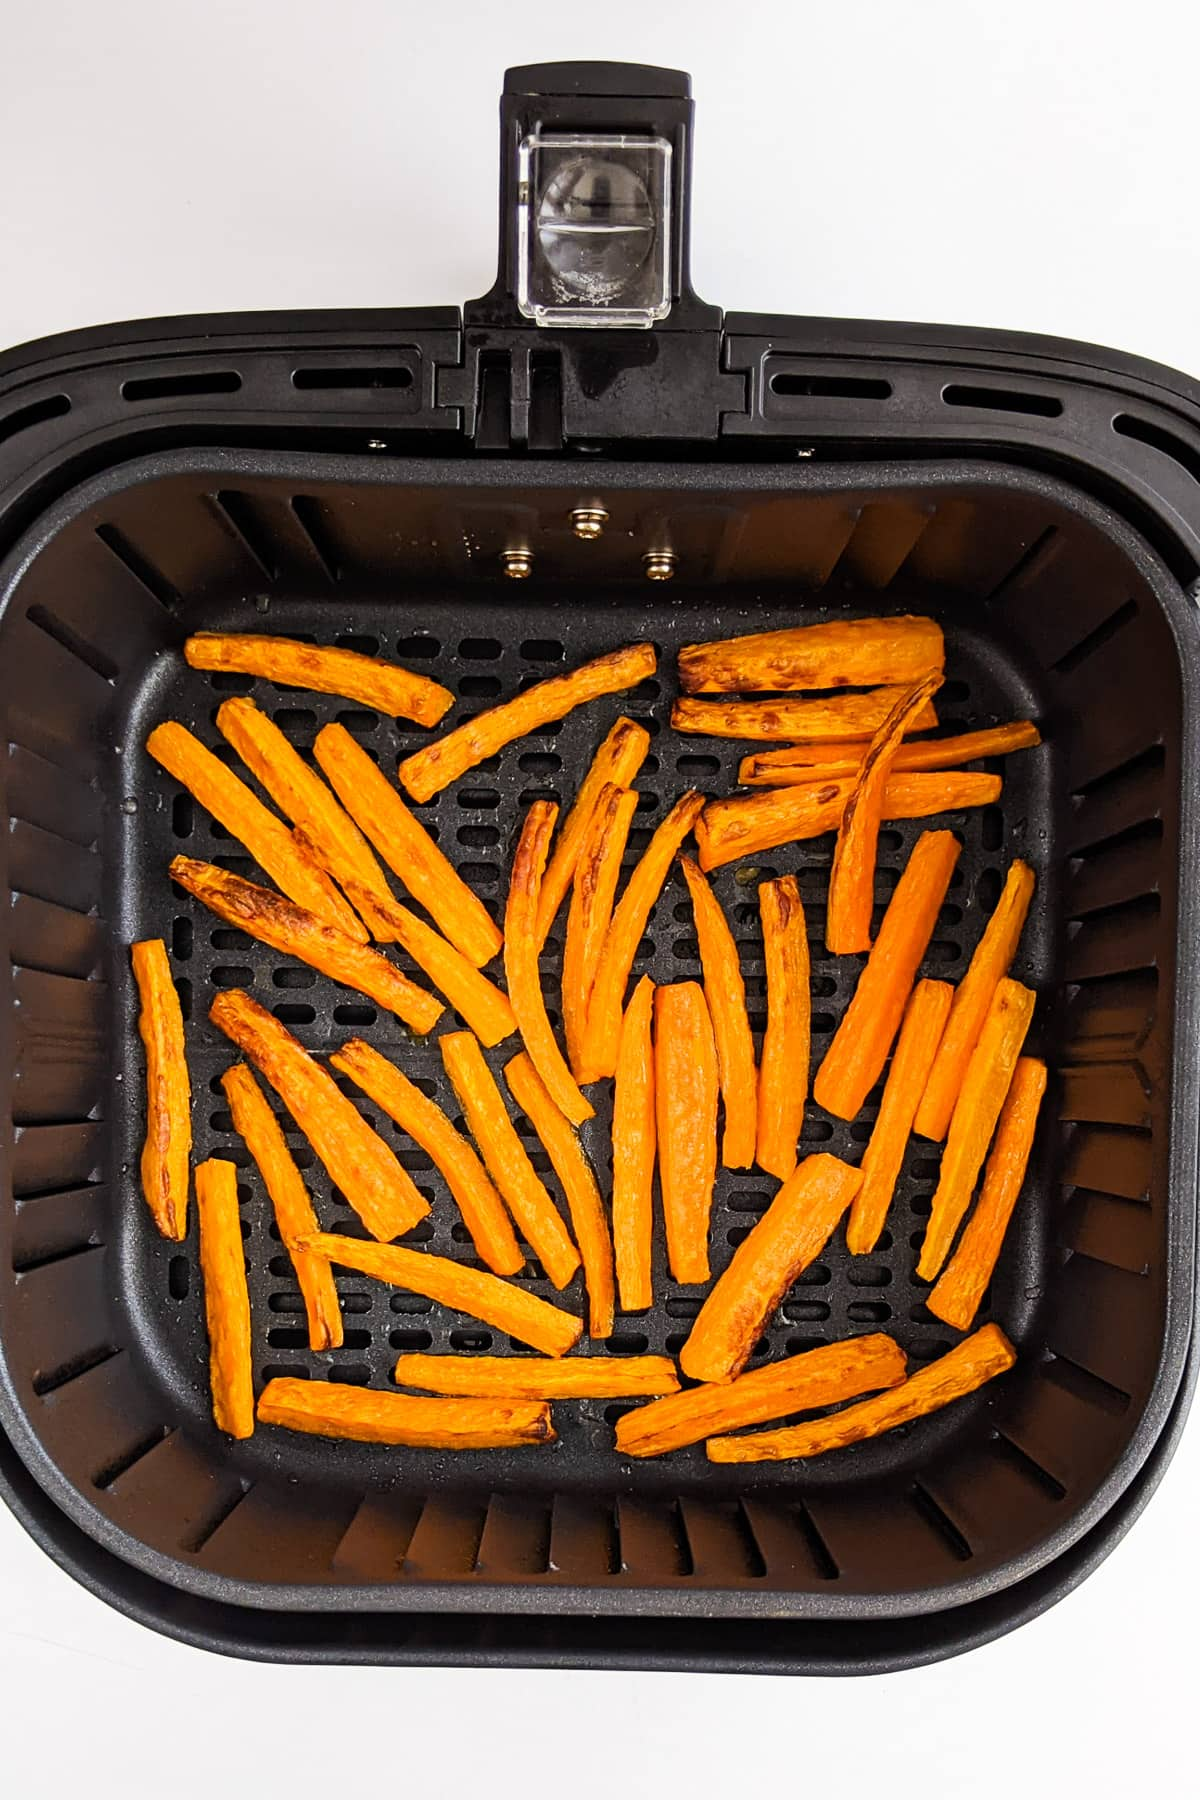 Top view of carrot slices in the air fryer basket.